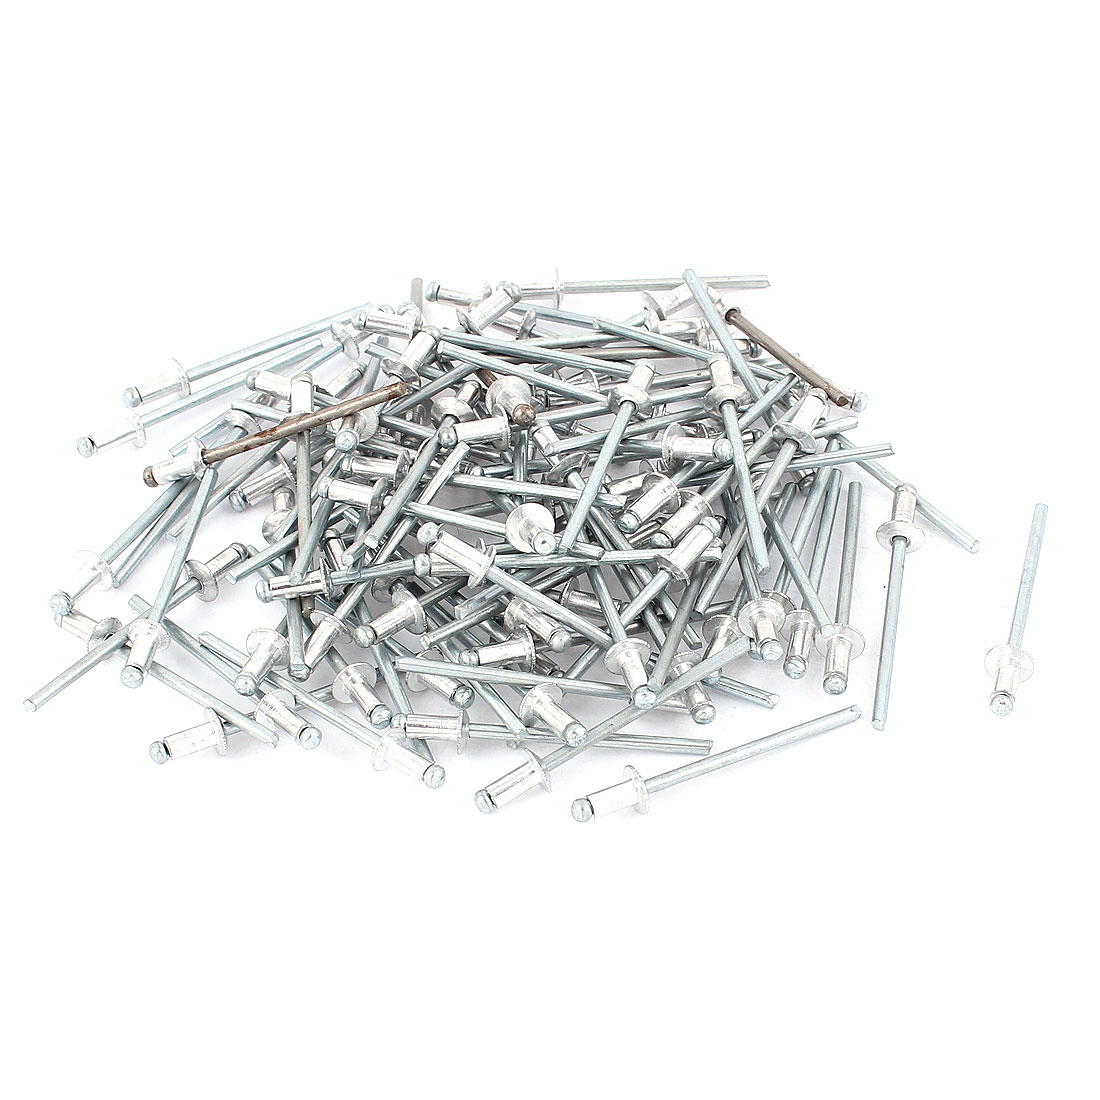 100 Pcs 3mm x 6mm Large Flange Dome Head Aluminium Blind Pop Rivets